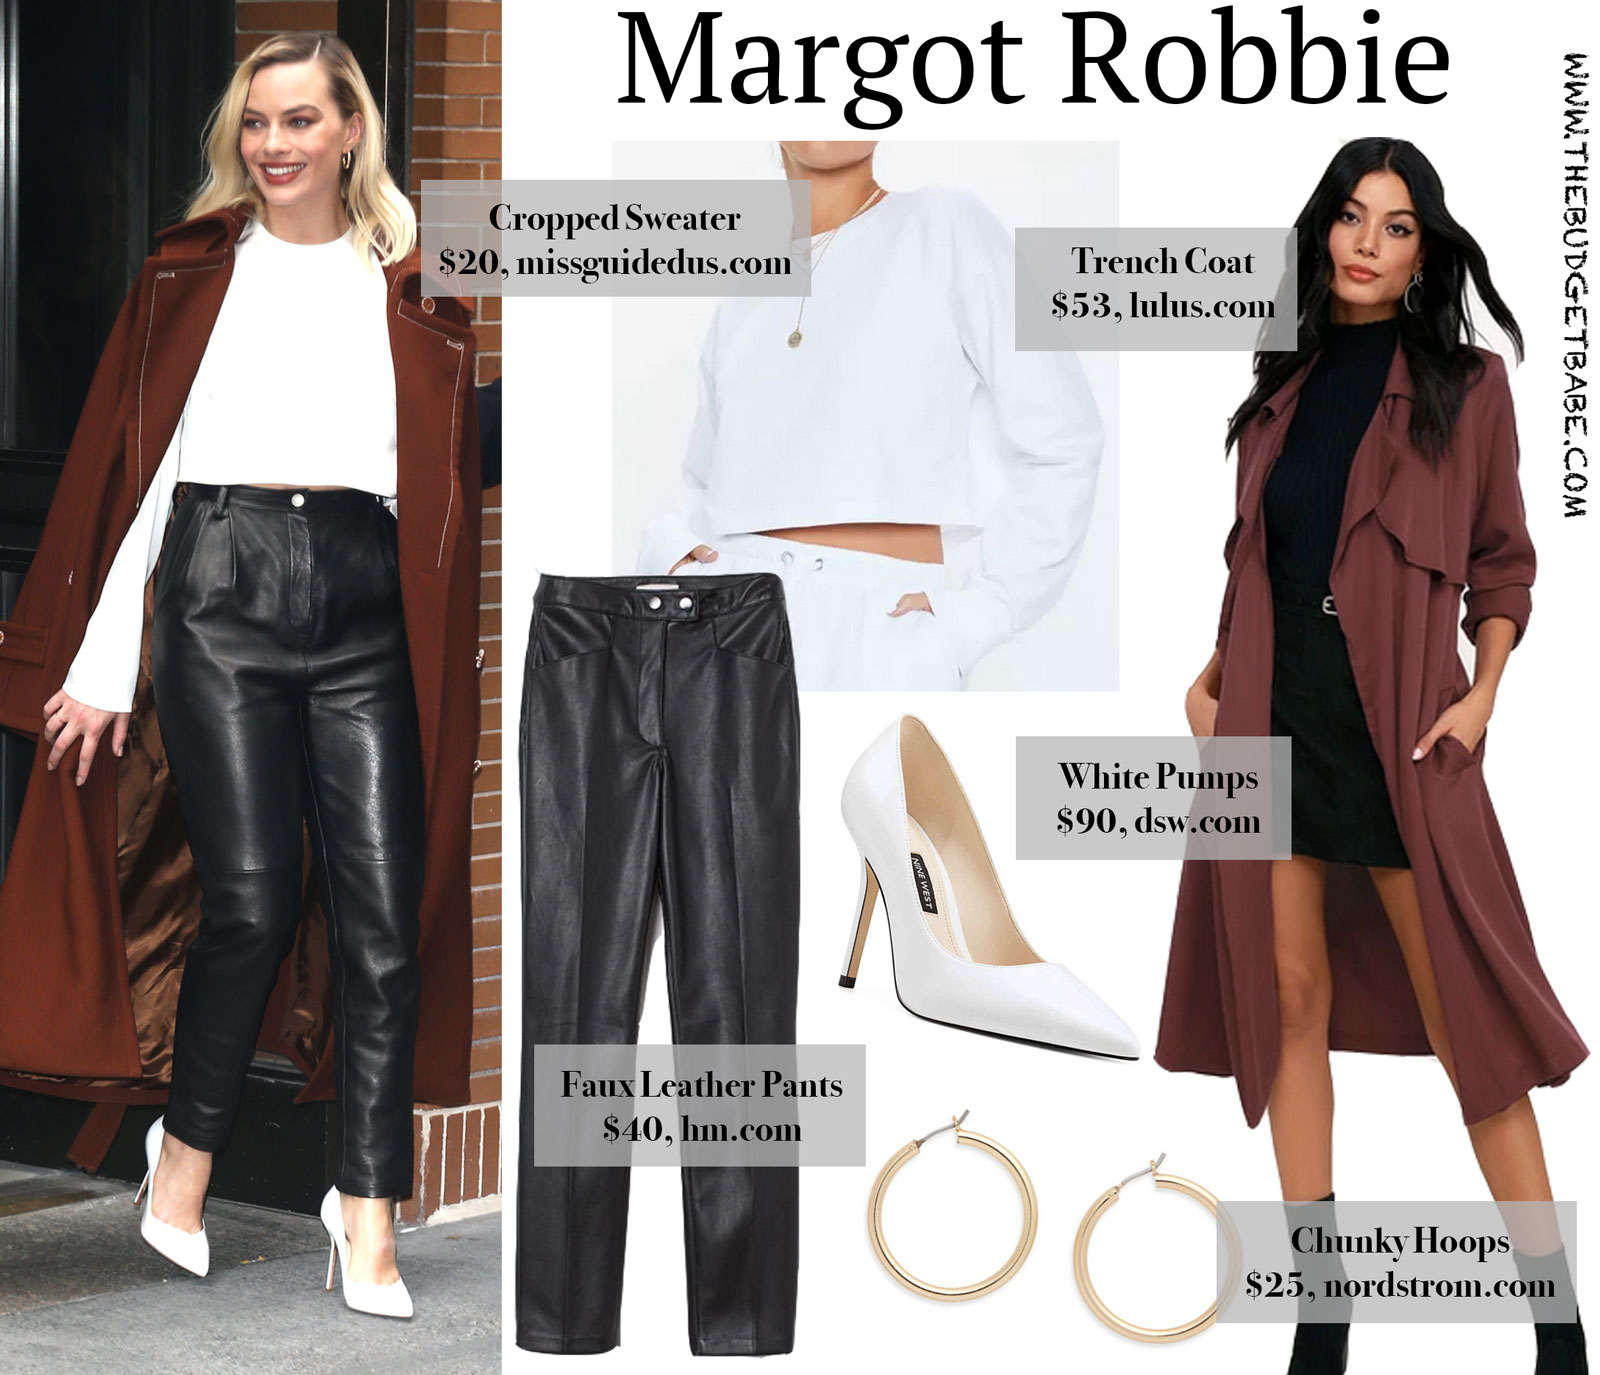 Margot Robbie Red Coat and Leather Pants Look for Less